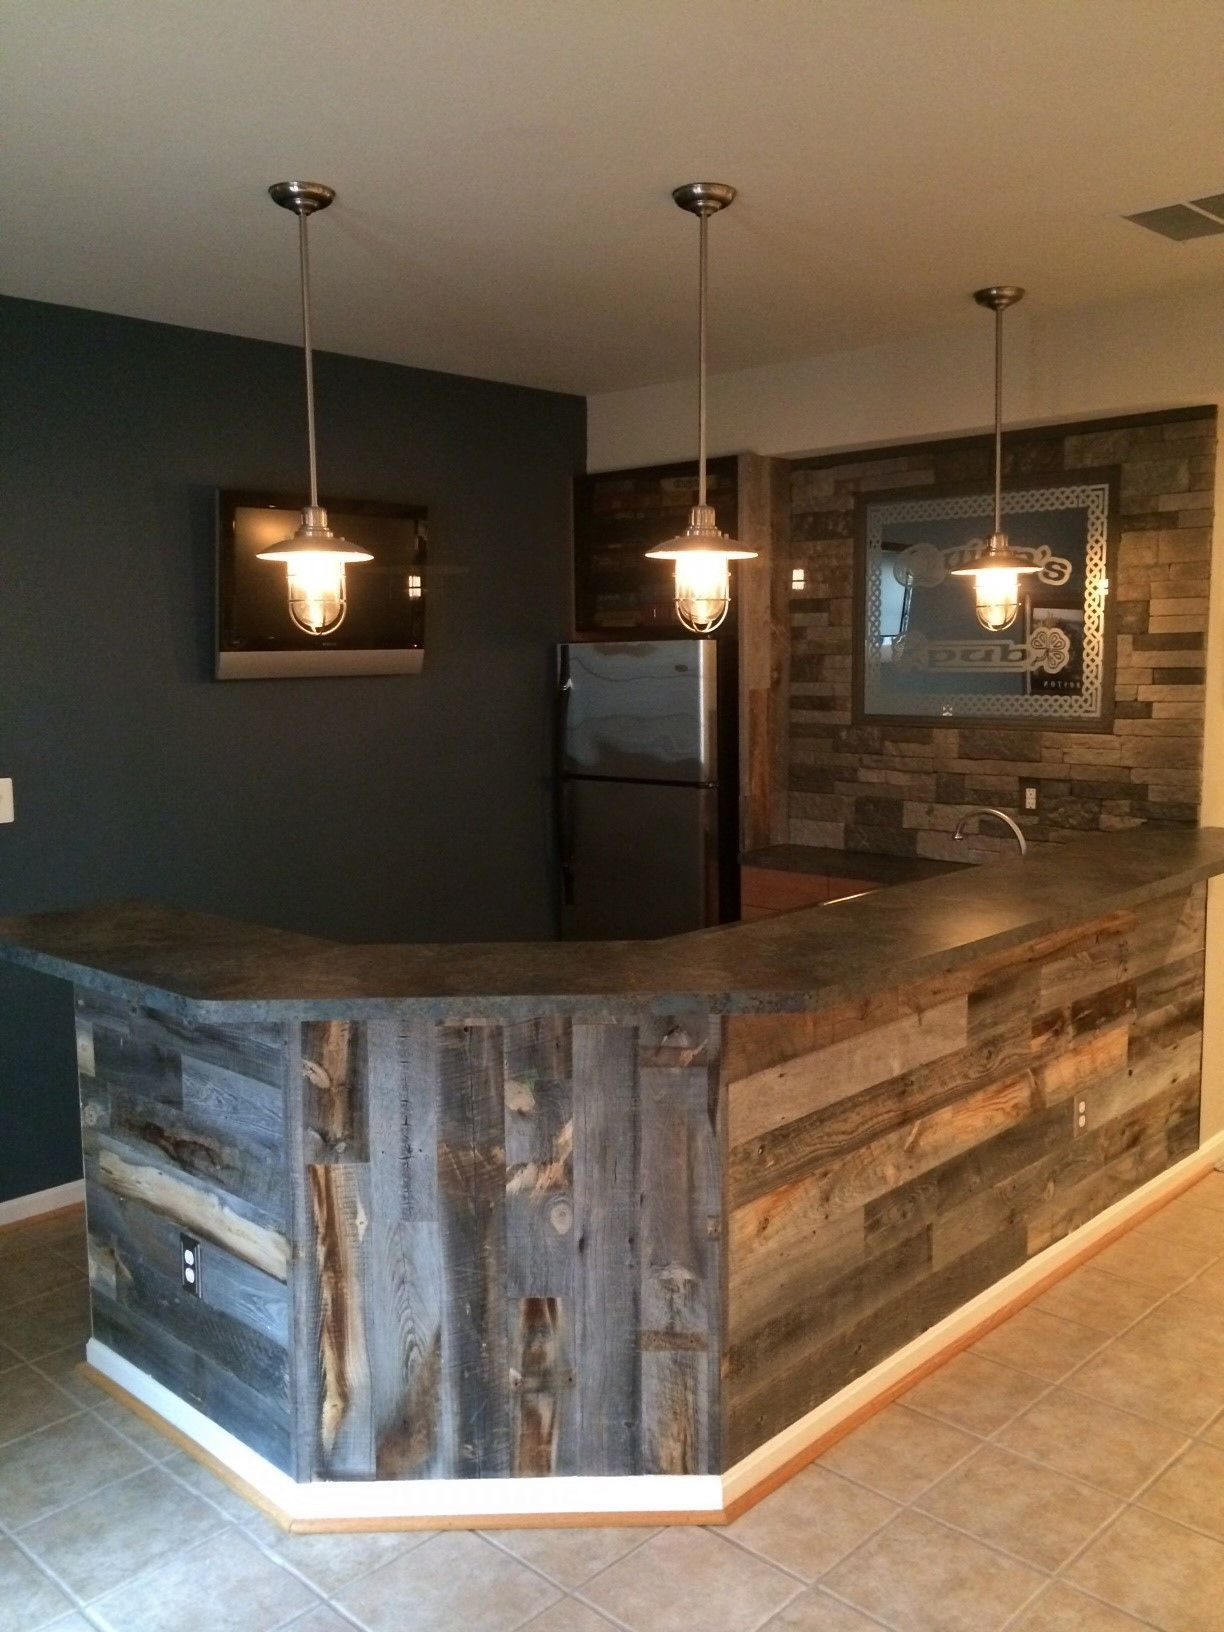 Reclaimed Weathered Wood More Wood Walls Ideas - Bar kits for basement